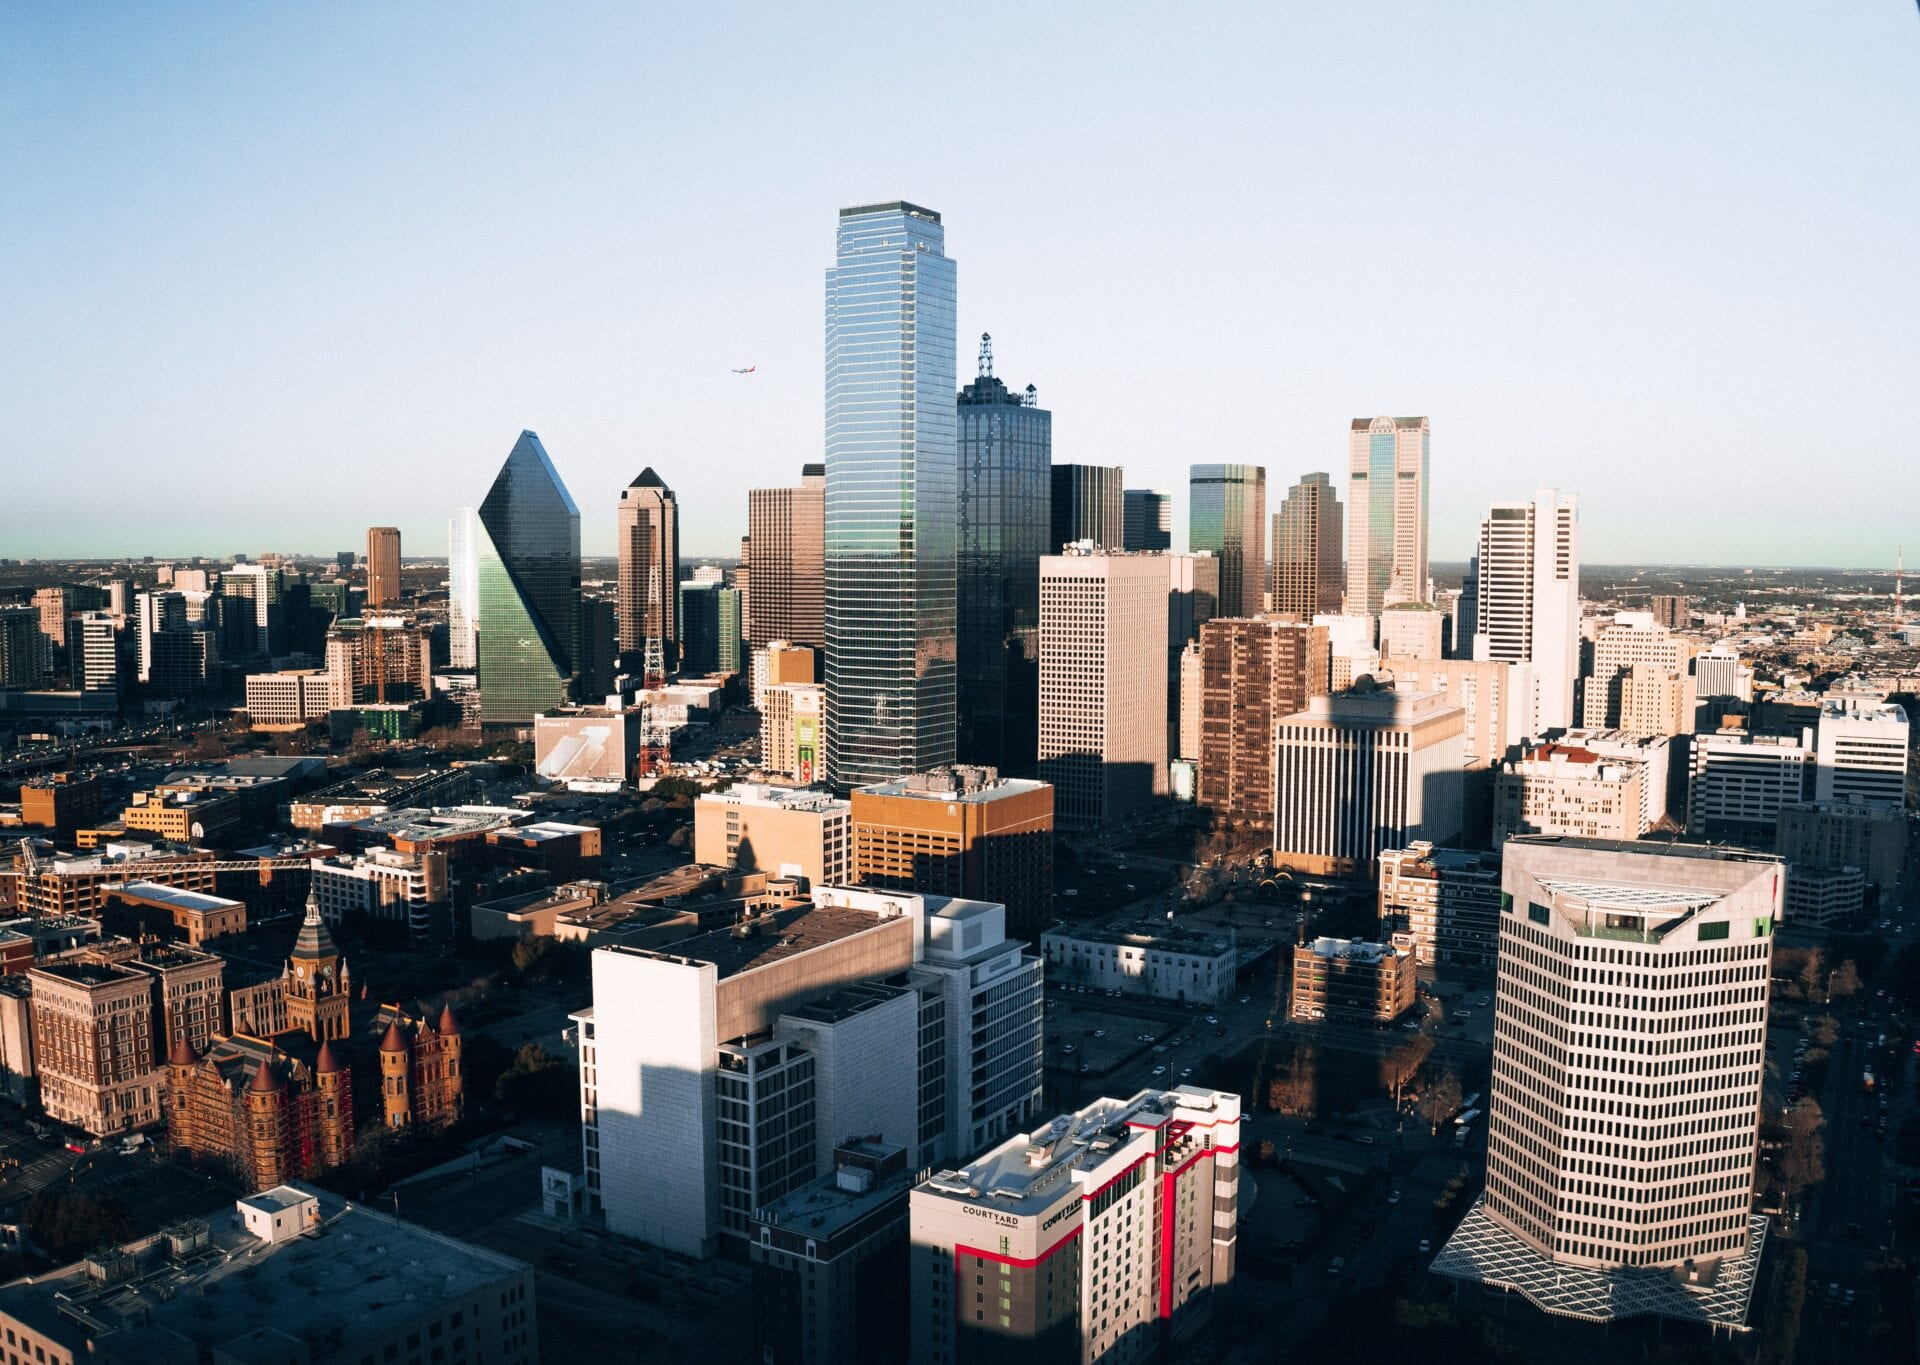 aerial-view-of-city-3003935